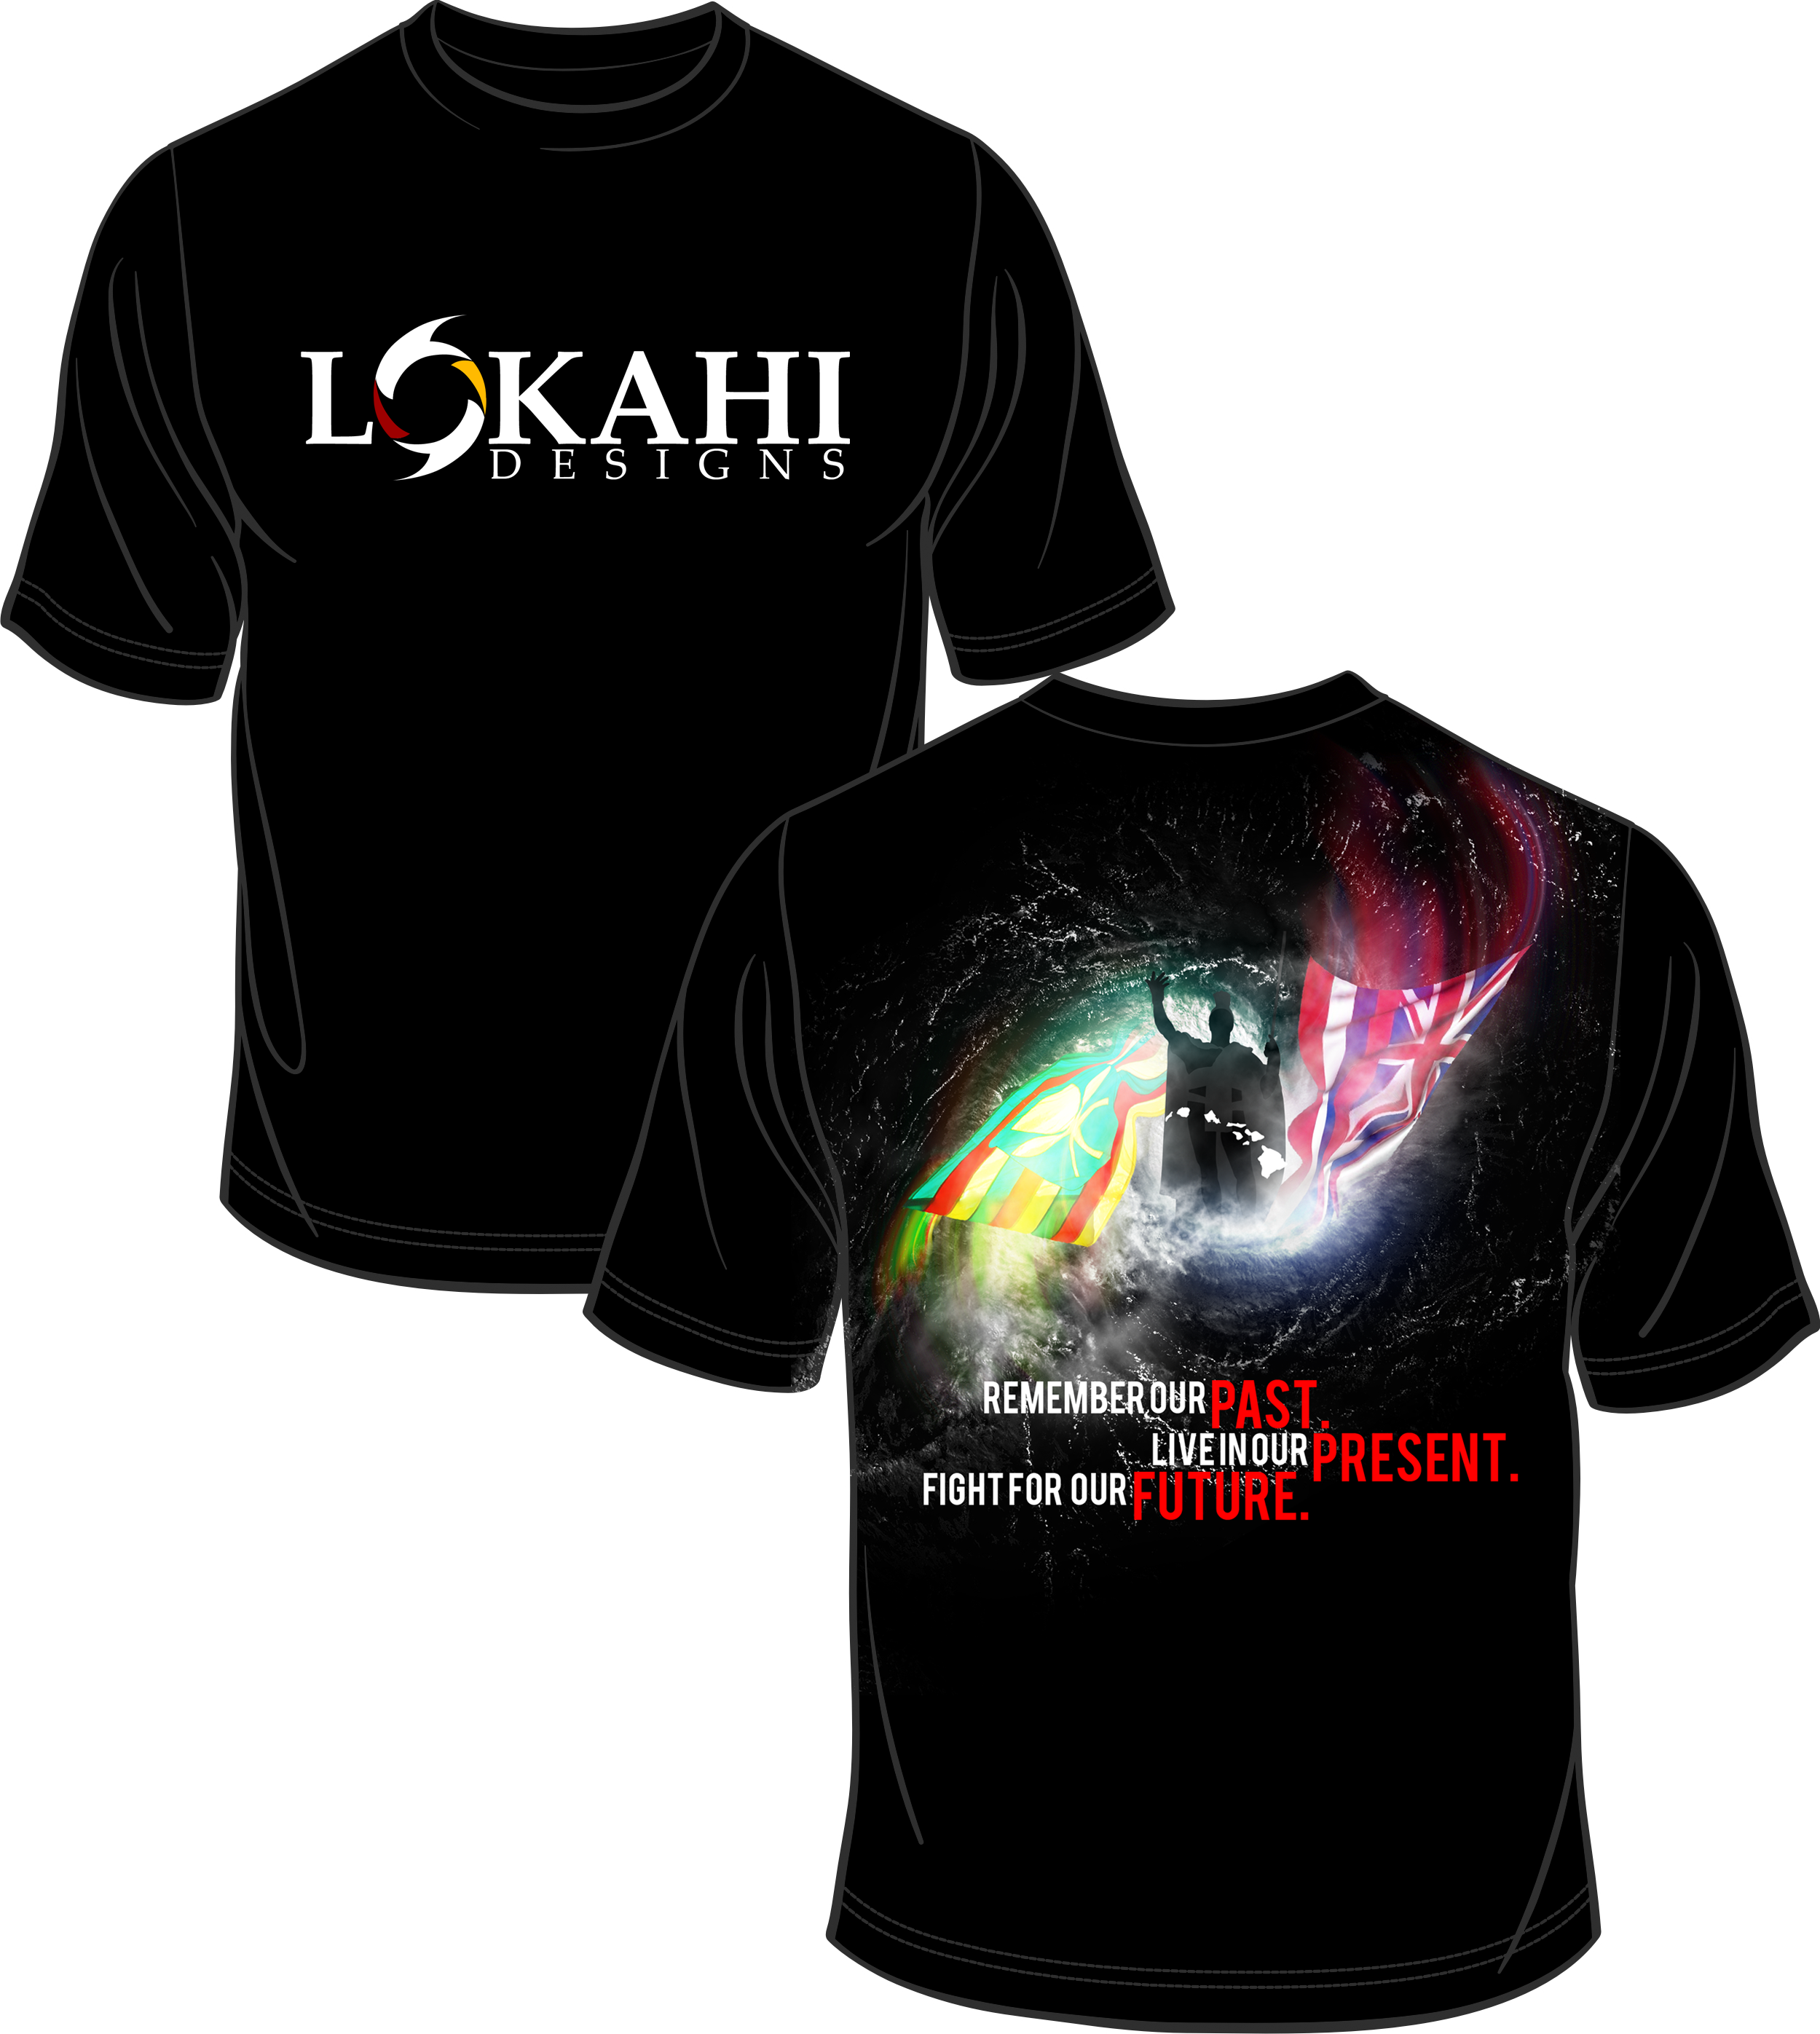 Clothing Design by Kenneth Joel - Entry No. 109 in the Clothing Design Contest Creative Clothing Design for LOKAHI designs.